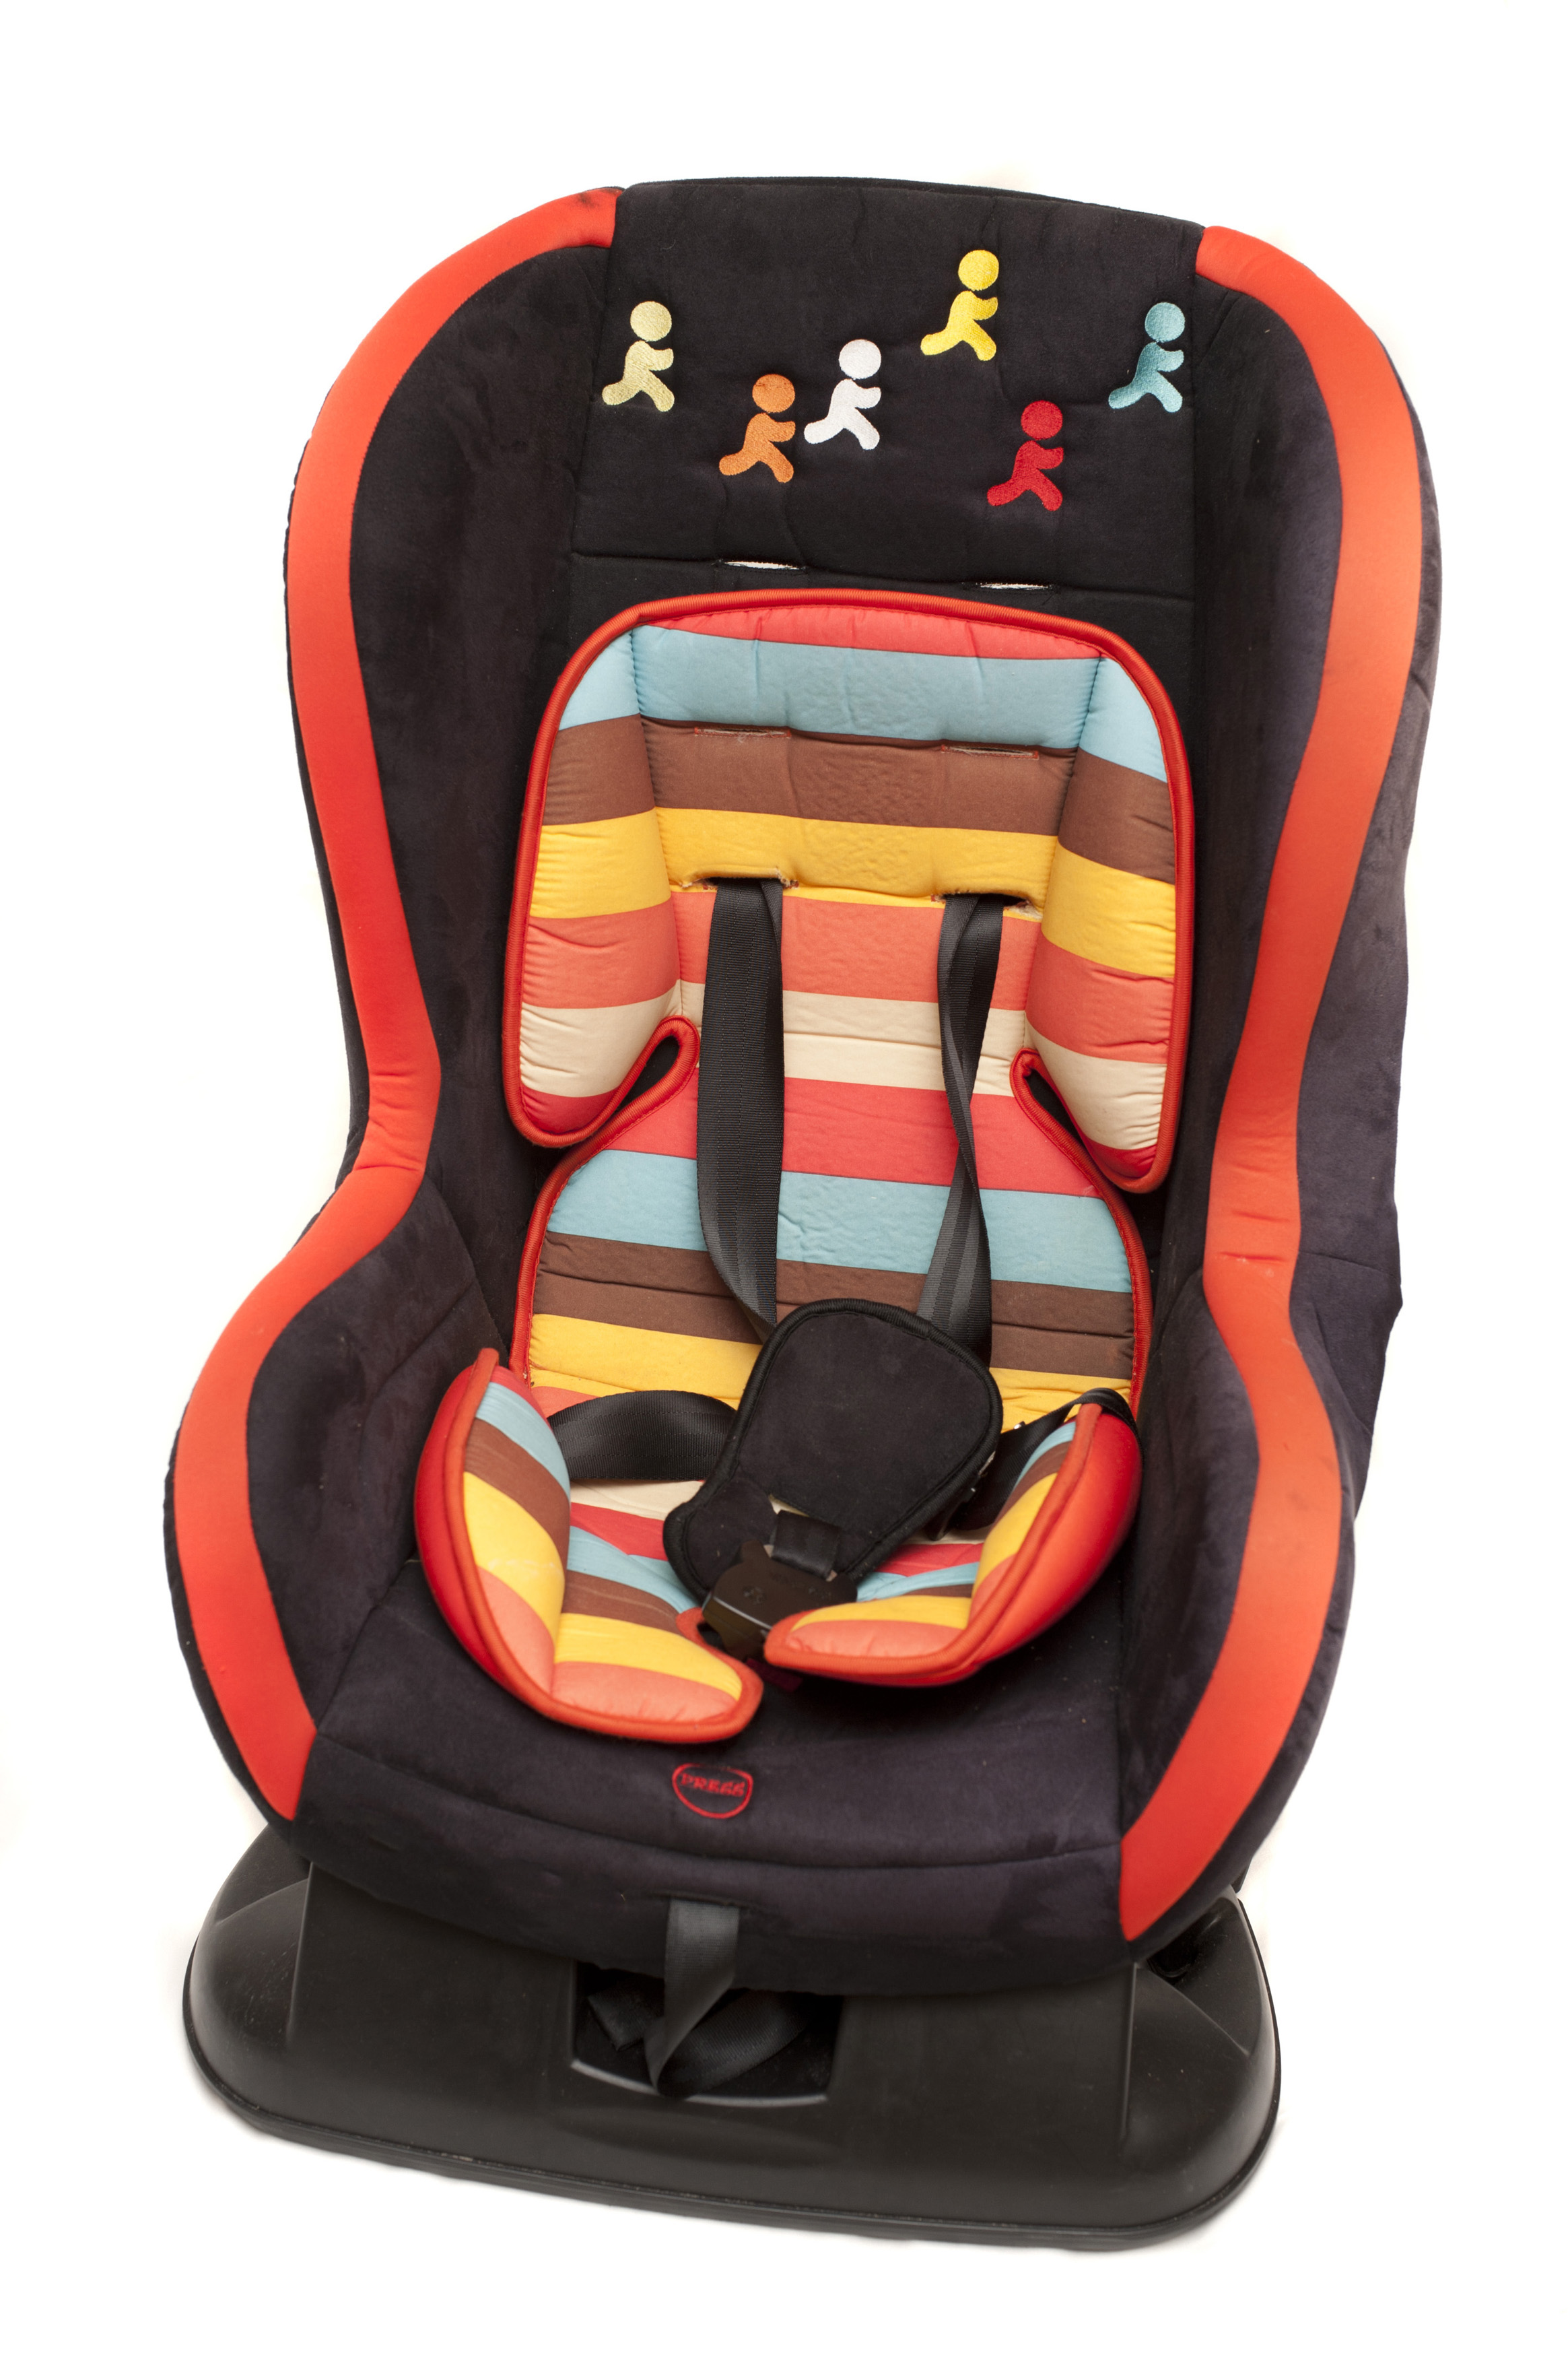 Colorful Baby Safety Car Seat For A Young Child Decorated With Striped Fabric And Little Running